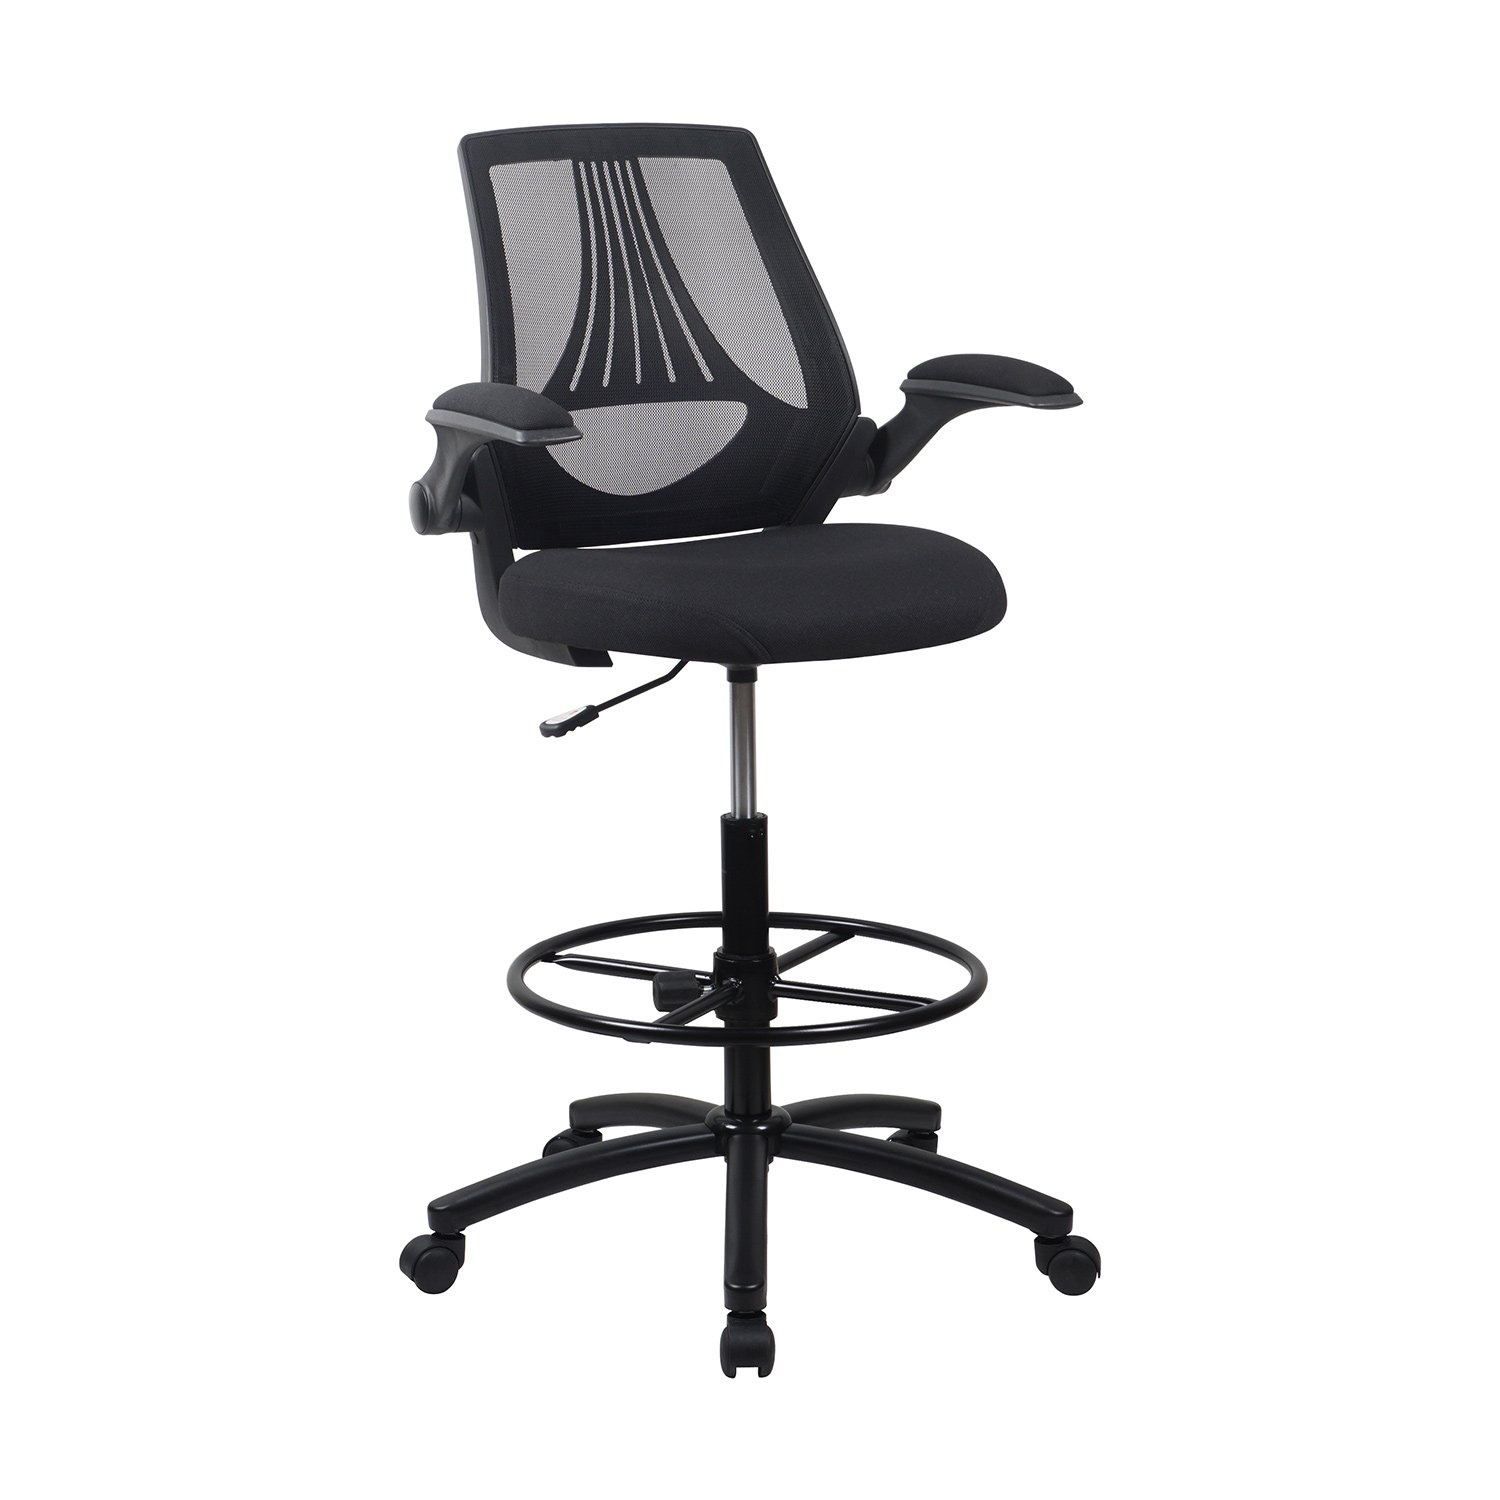 Lch Ergonomic Drafting Chair Mesh Office Chair Adjustable Height